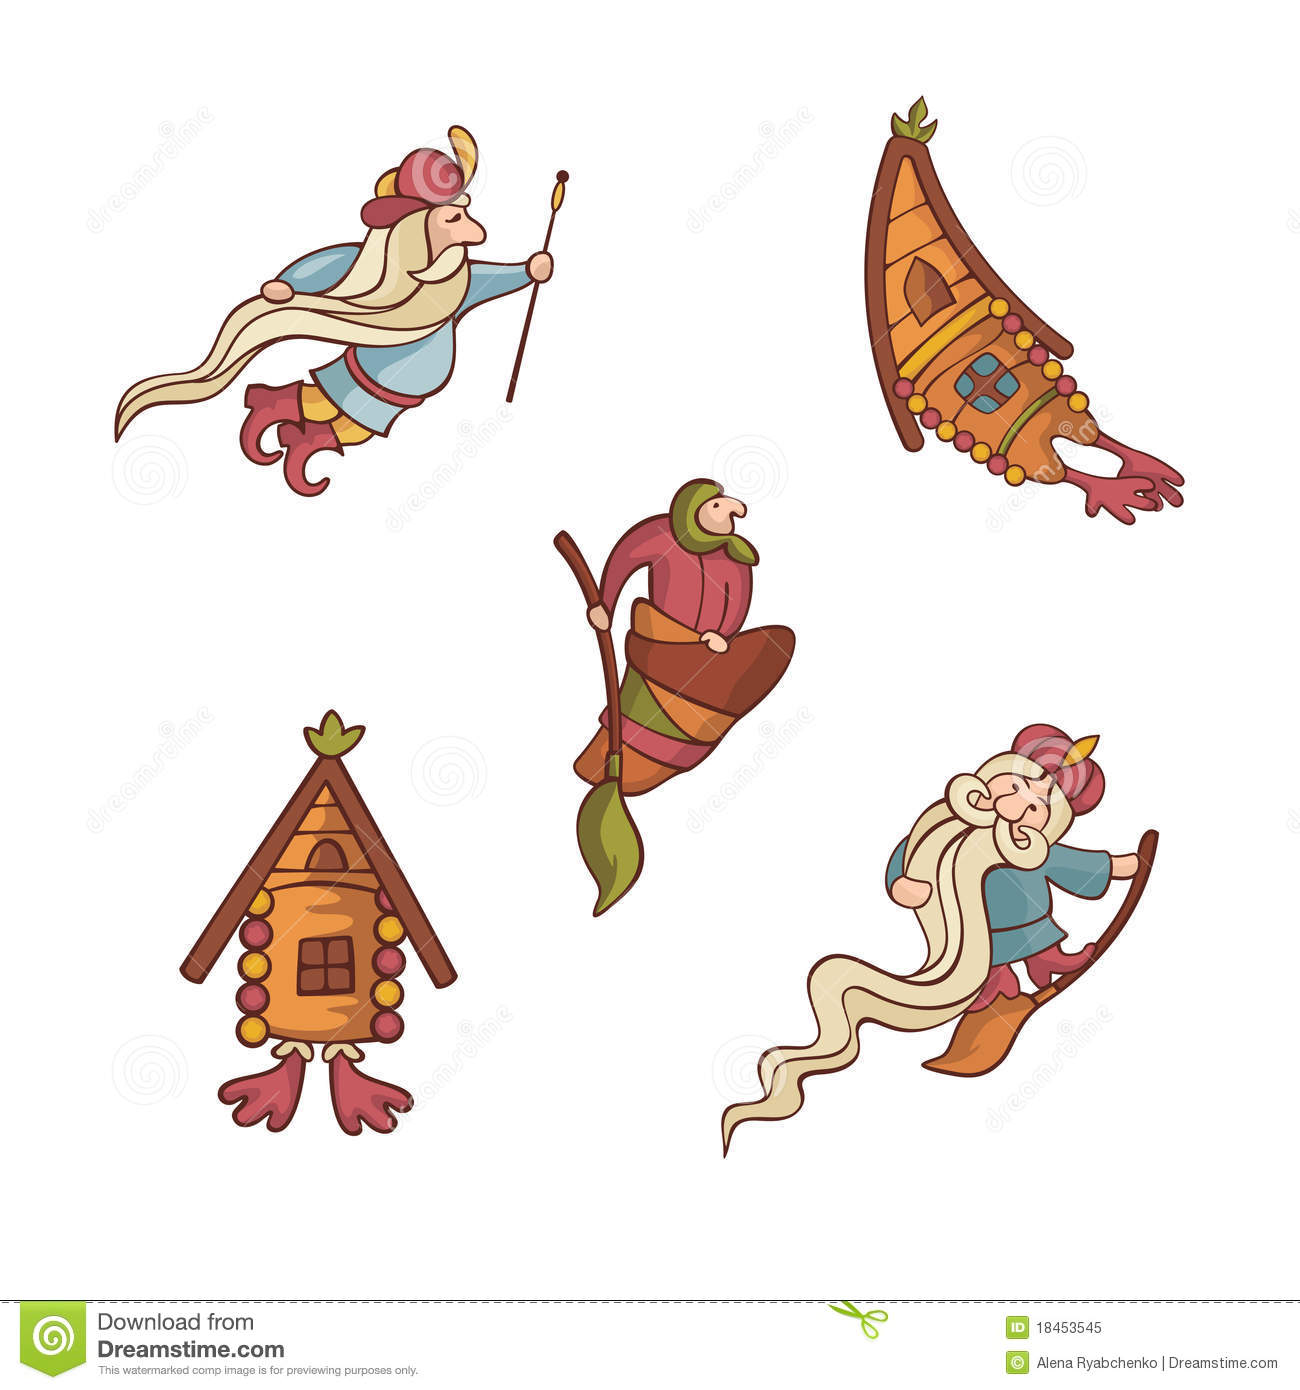 Fairytale Settings: Set Of Cute Fairytale Characters Royalty Free Stock Photo